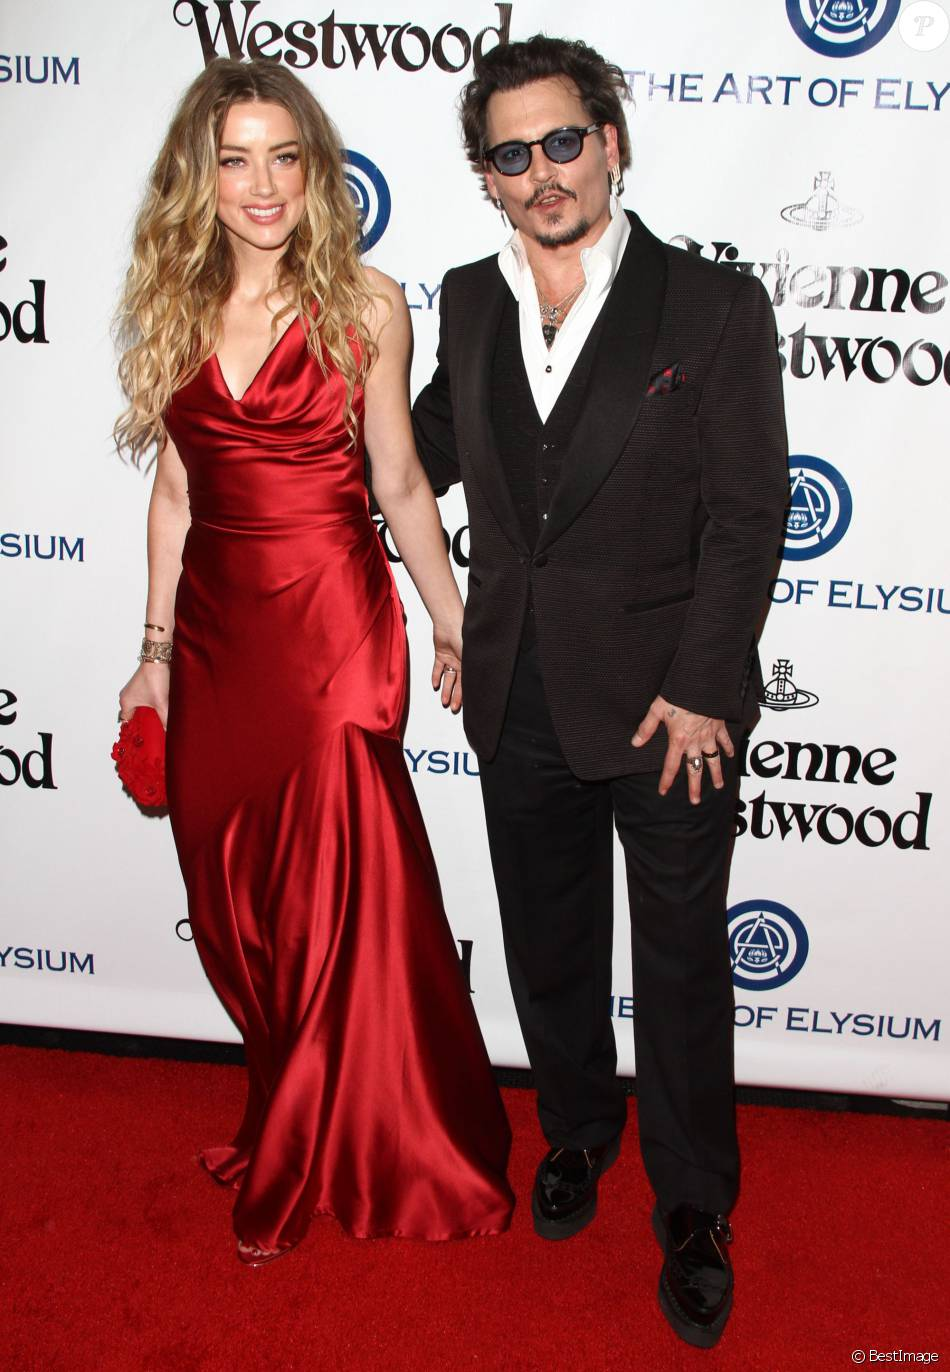 Johnny Depp et sa femme Amber Heard - 9ème Gala Heaven organisé par l'association The Art Of Elysium à Culver City le 9 janvier 2016.